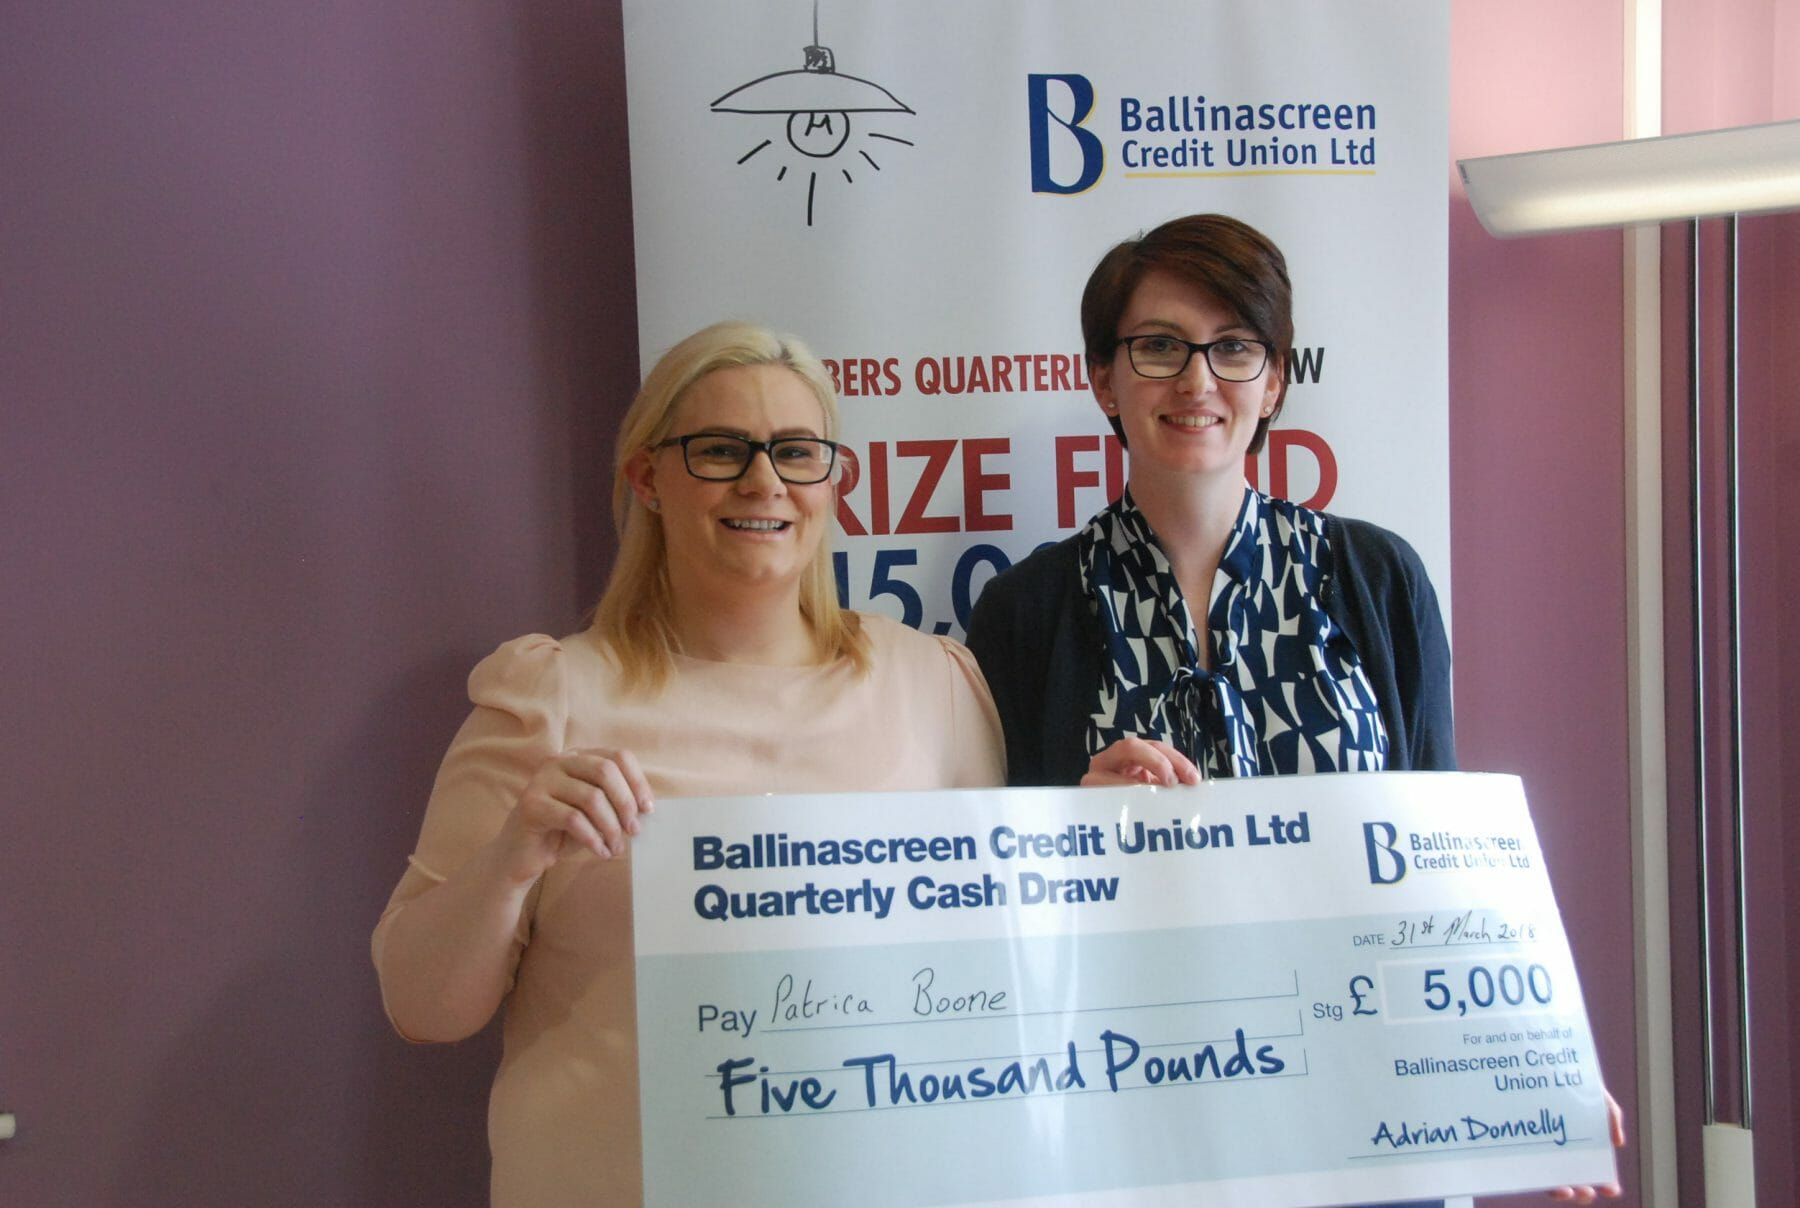 Patricia Boone cash draw winner receiving her cheque from Kathleen O'Hagan